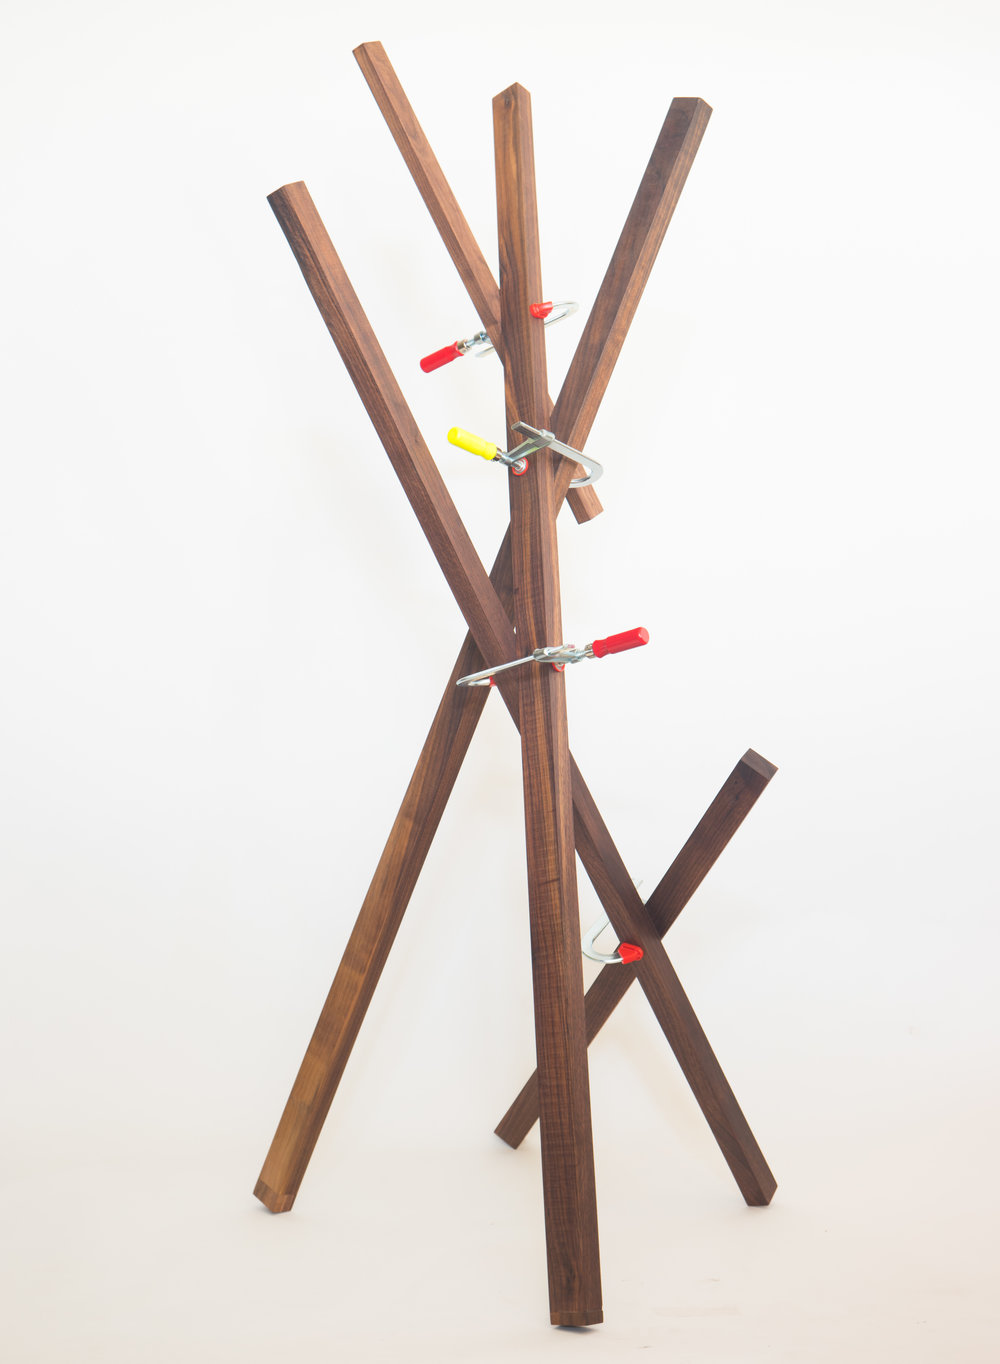 INTERSECT NO.2    2016/17    walnut, steel clamps, acrylic paint    20 x 25 x 57.5 inches    see store tab for price